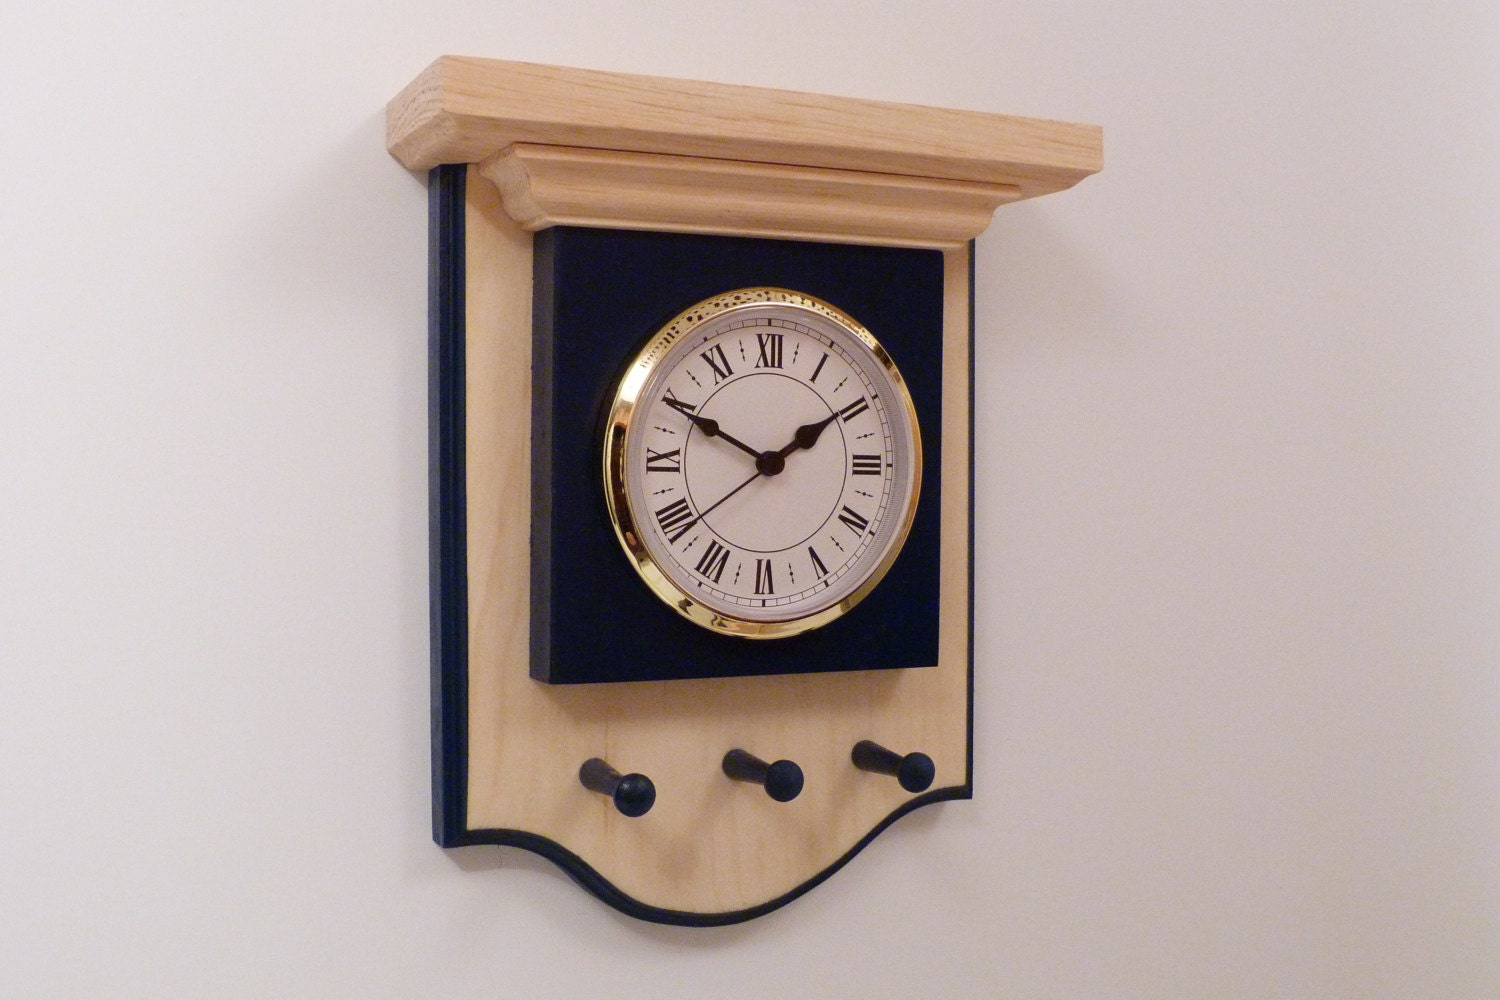 handmade wooden clocks wall clock wood wall clock handmade clock clock wooden 982